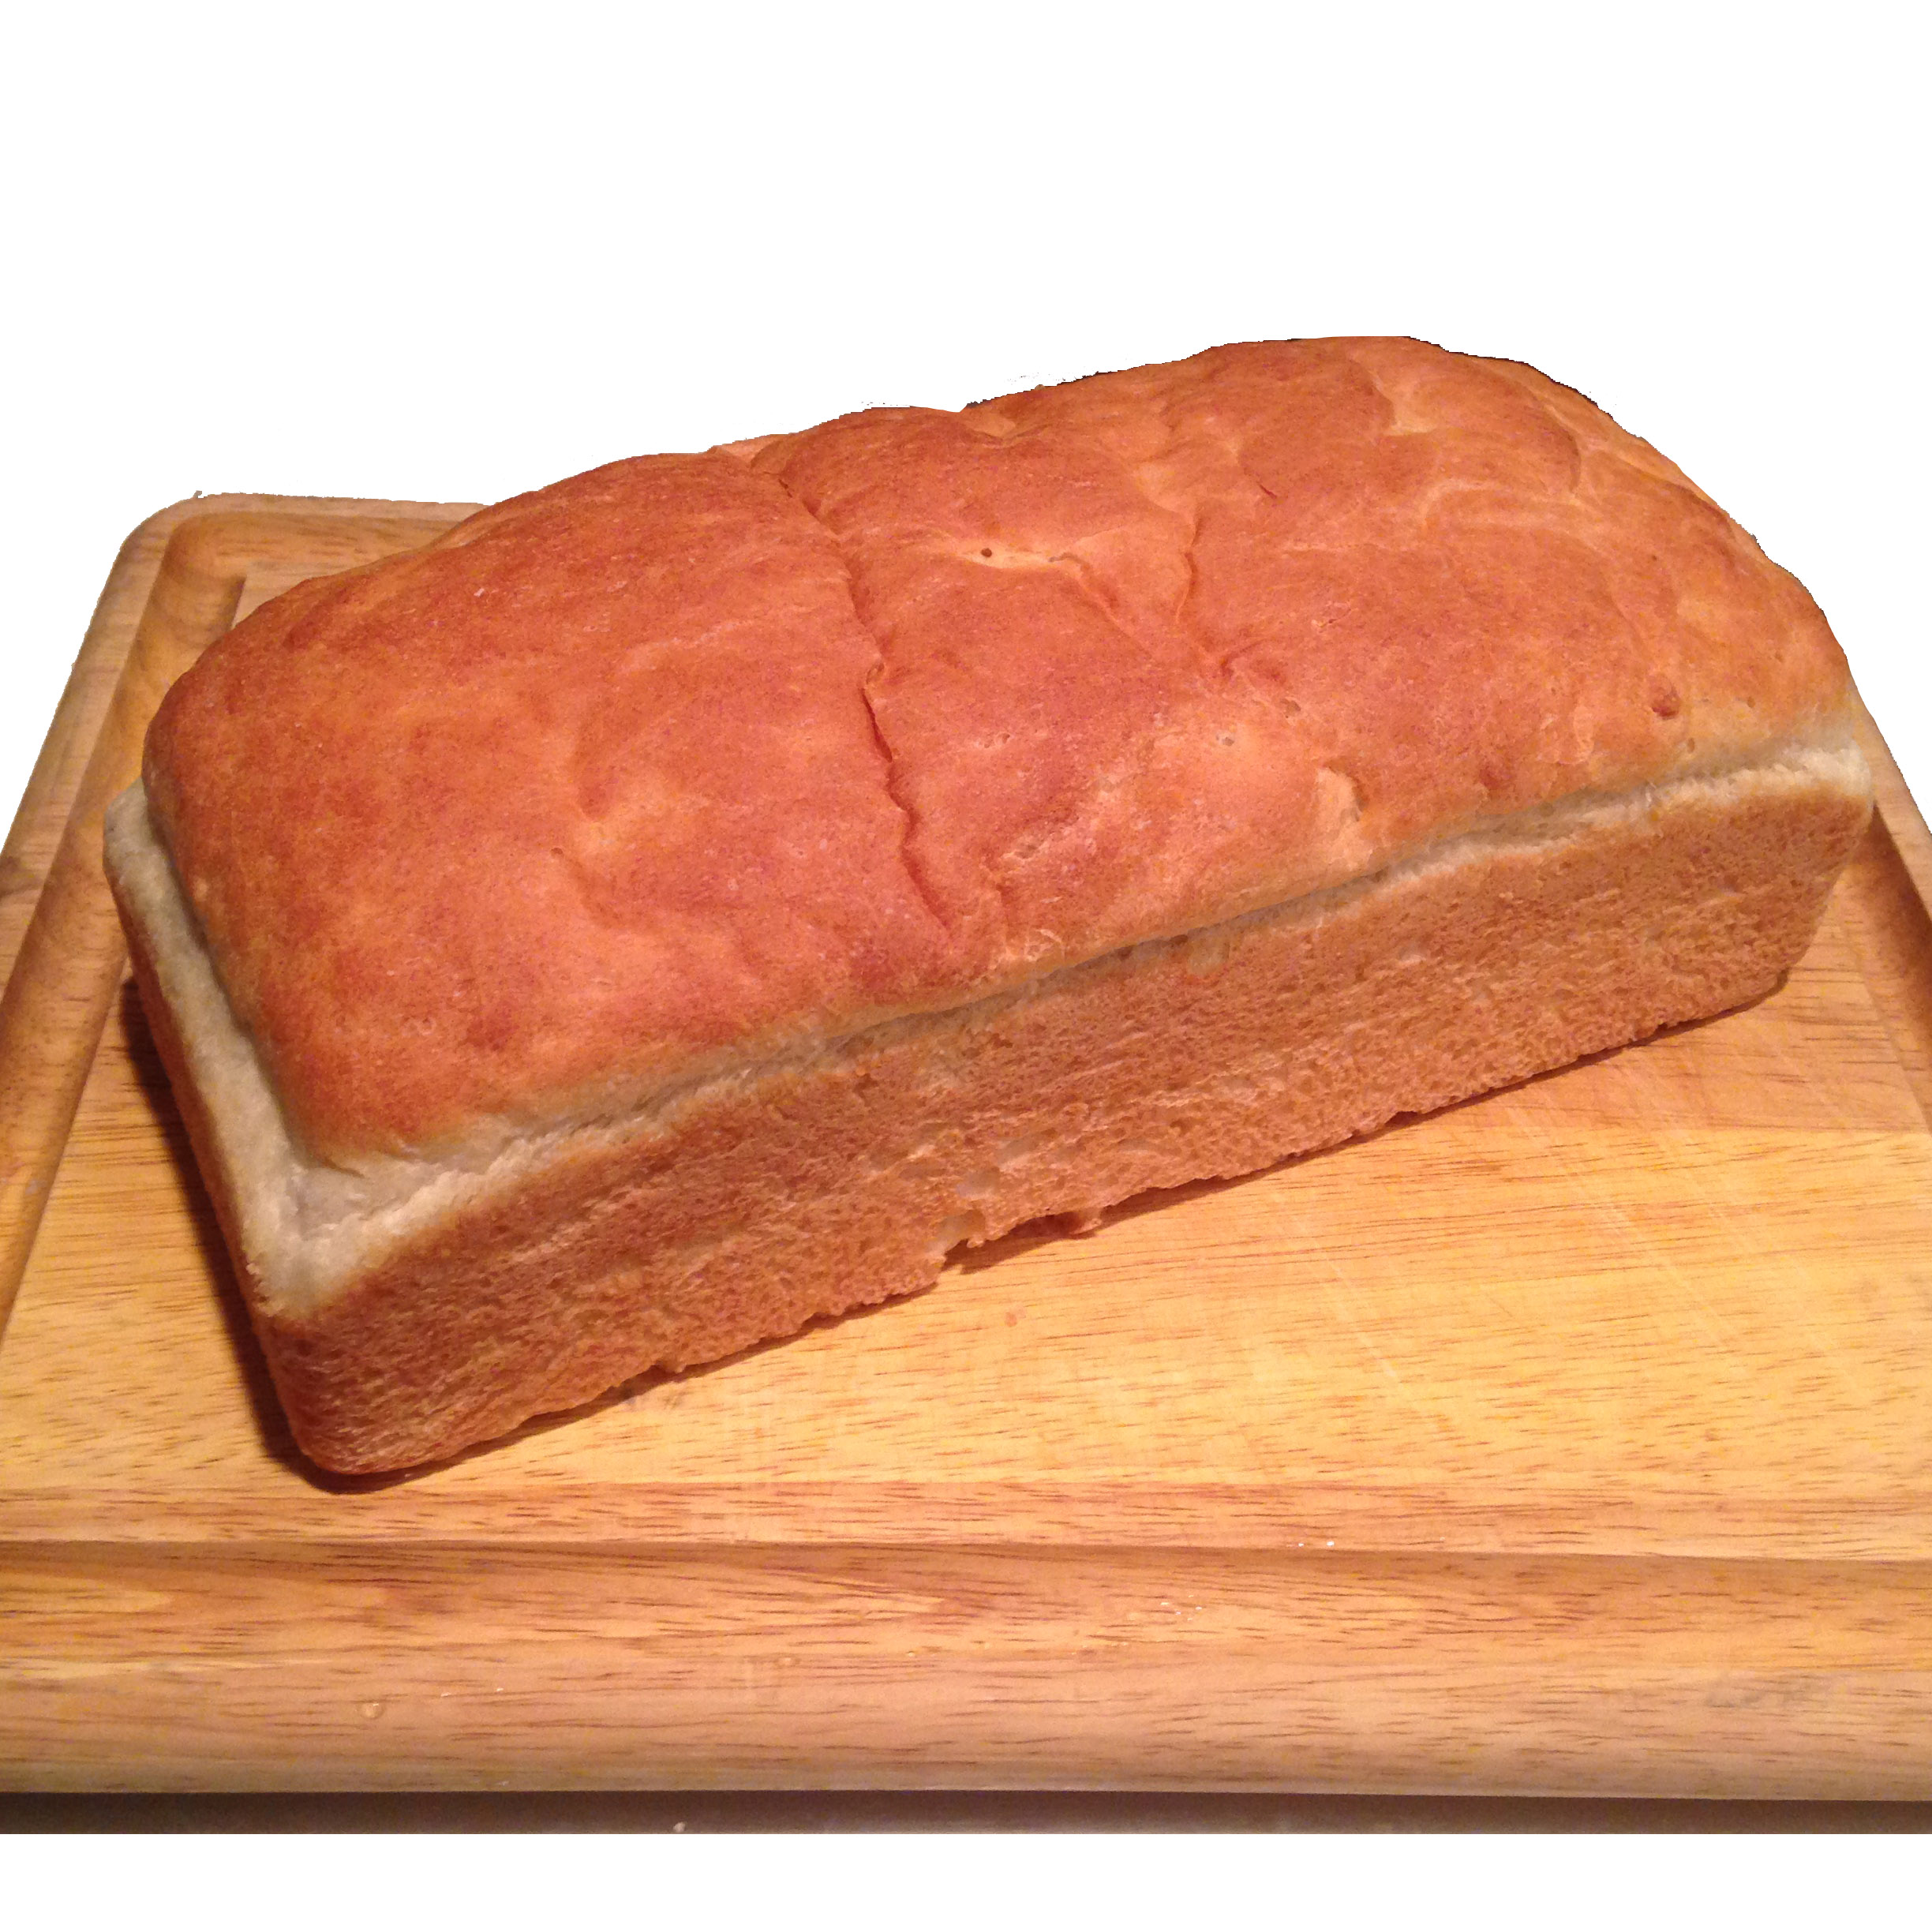 I baked a loaf of bread. It came out great!